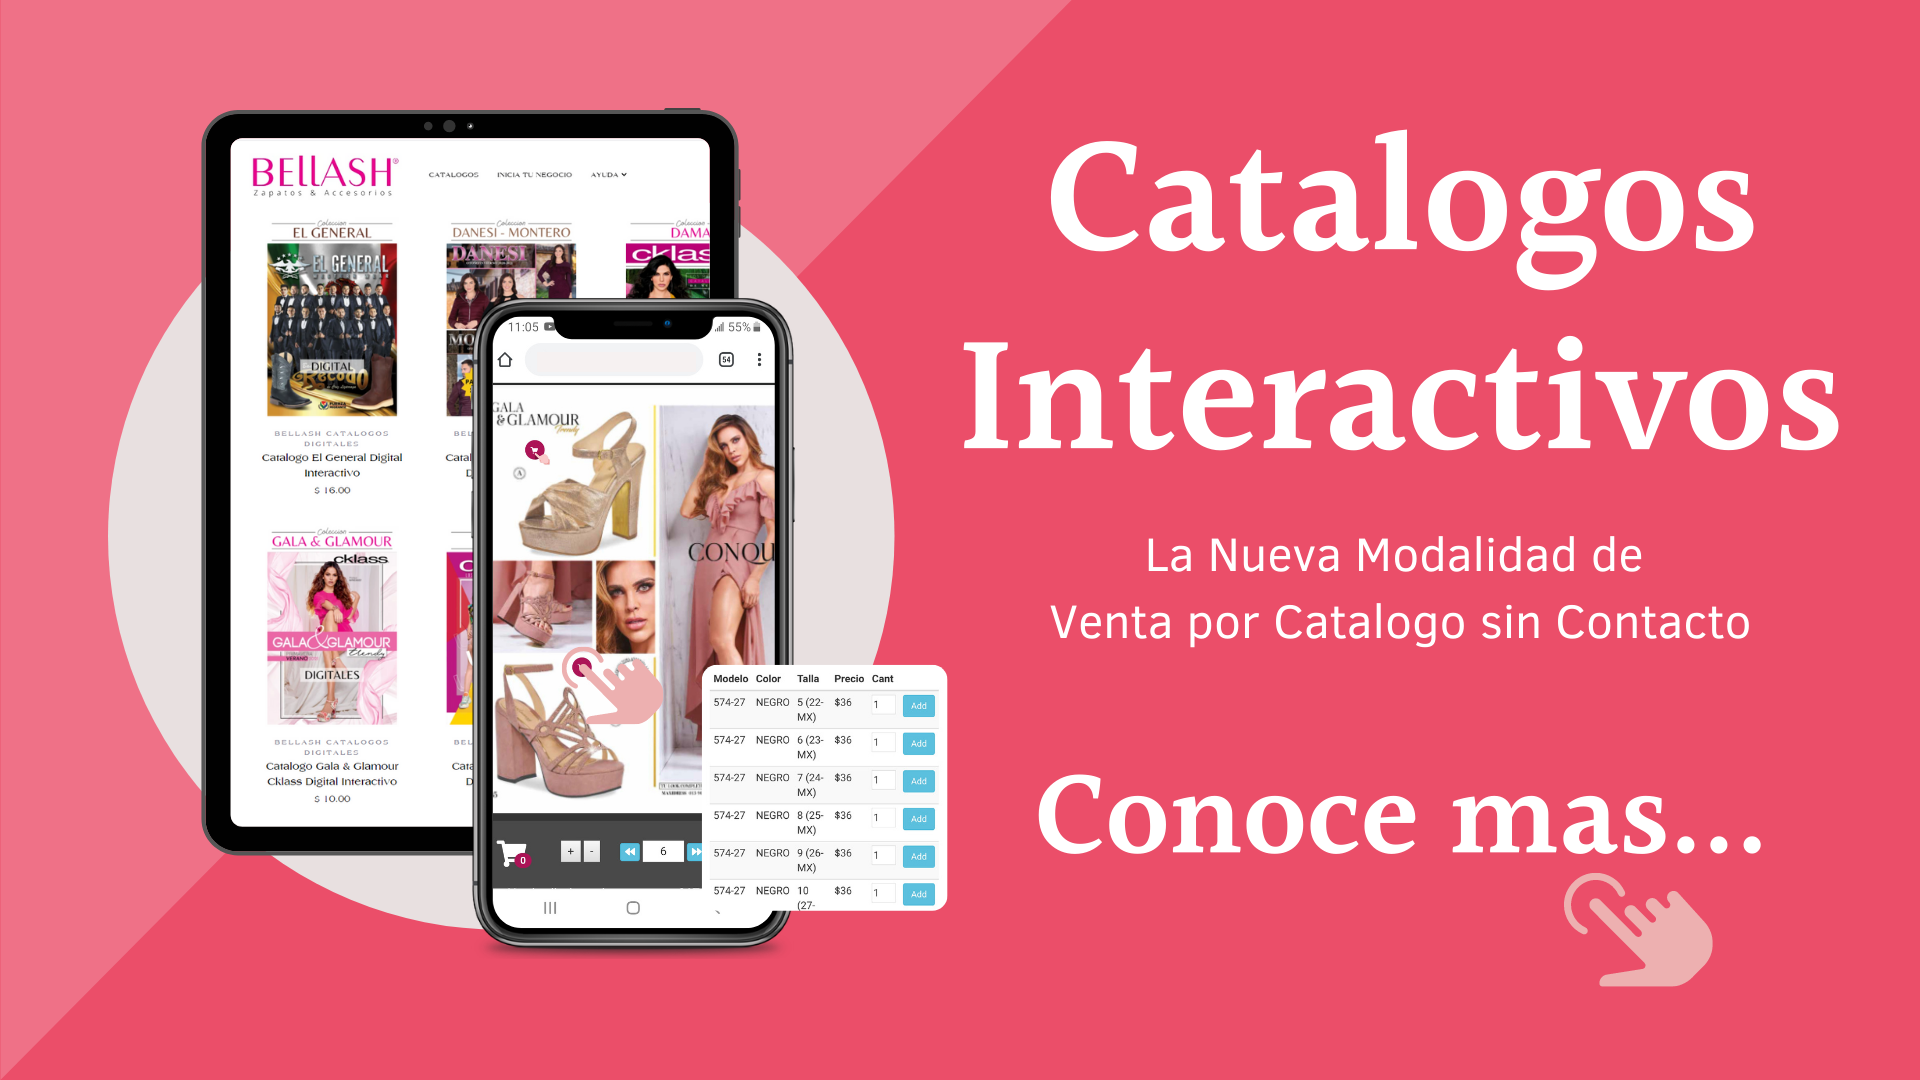 CATALOGOS DIGITALES INTERACTIVOS - CONOCE MAS